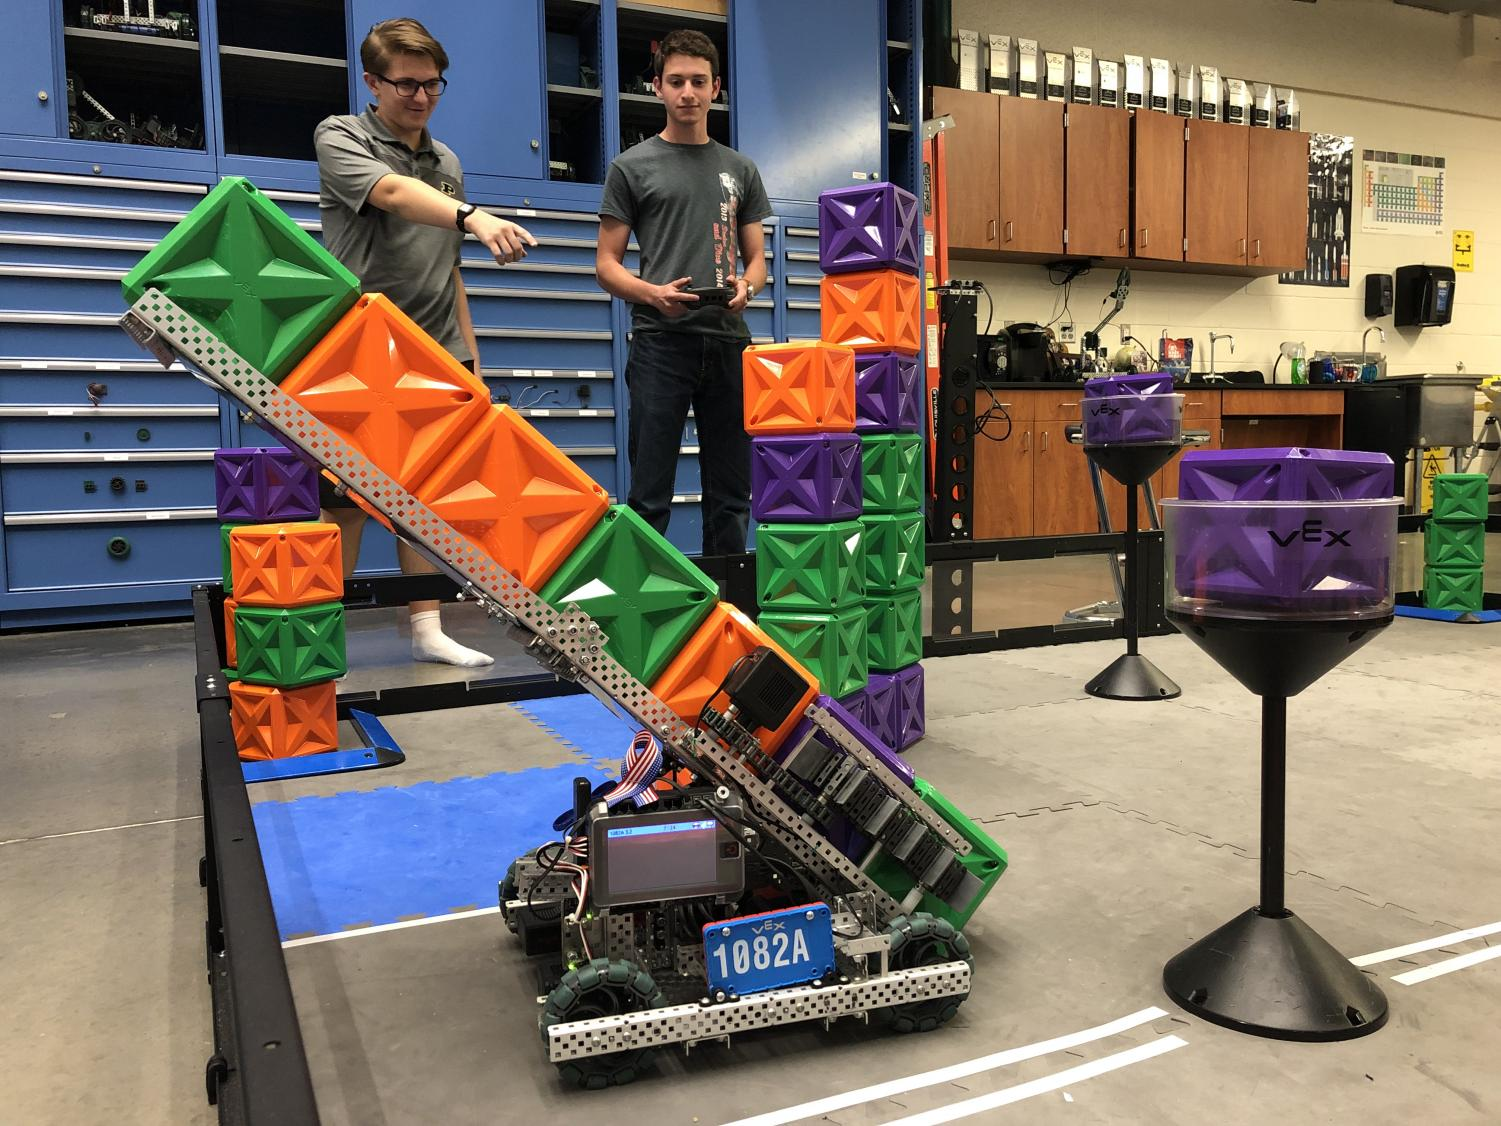 Senior Anthony Ciletti and senior Jake Bluestein practice for the competition by having the robot pick up cubes.